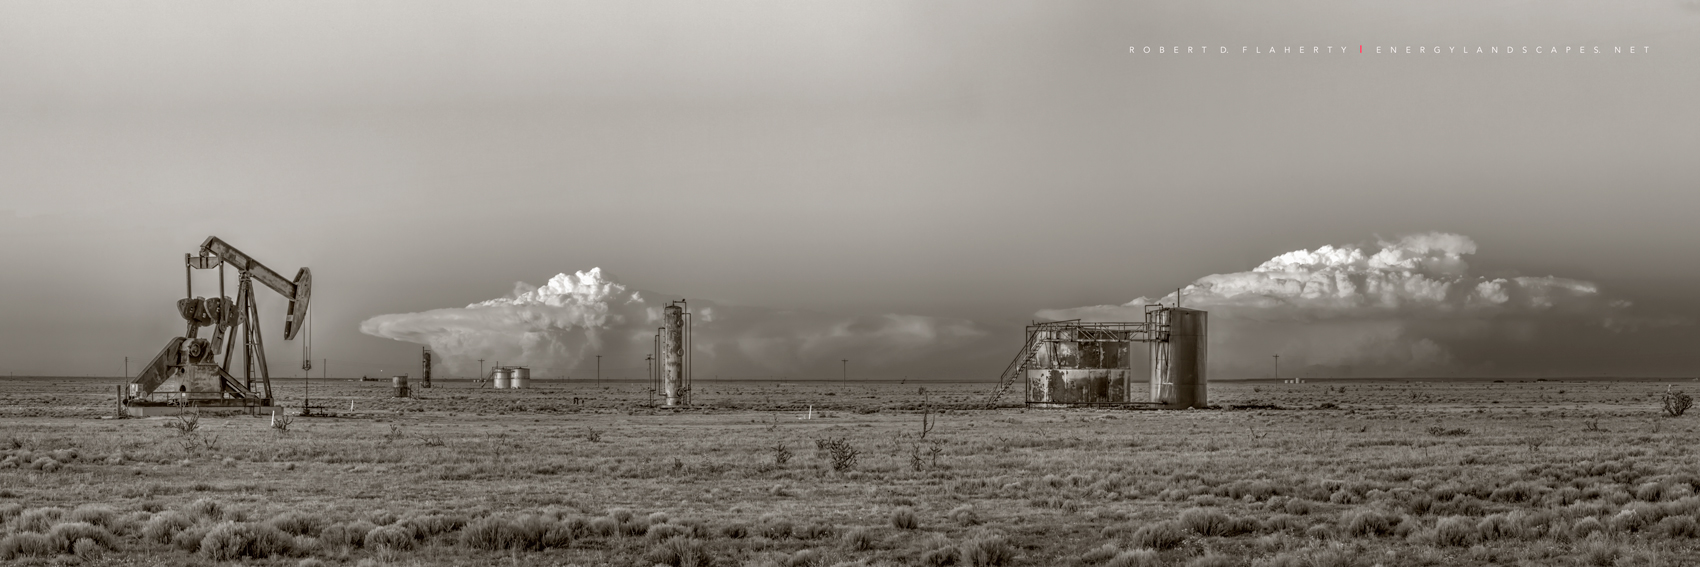 Button Mesa, Texas, New Mexico, Oklahoma, photograph, Fine art photography, thunderstorm, Spring, Chavez County New Mexico, Permian Basin, high resolution, panorama, sepia, black & white, black and wh, photo